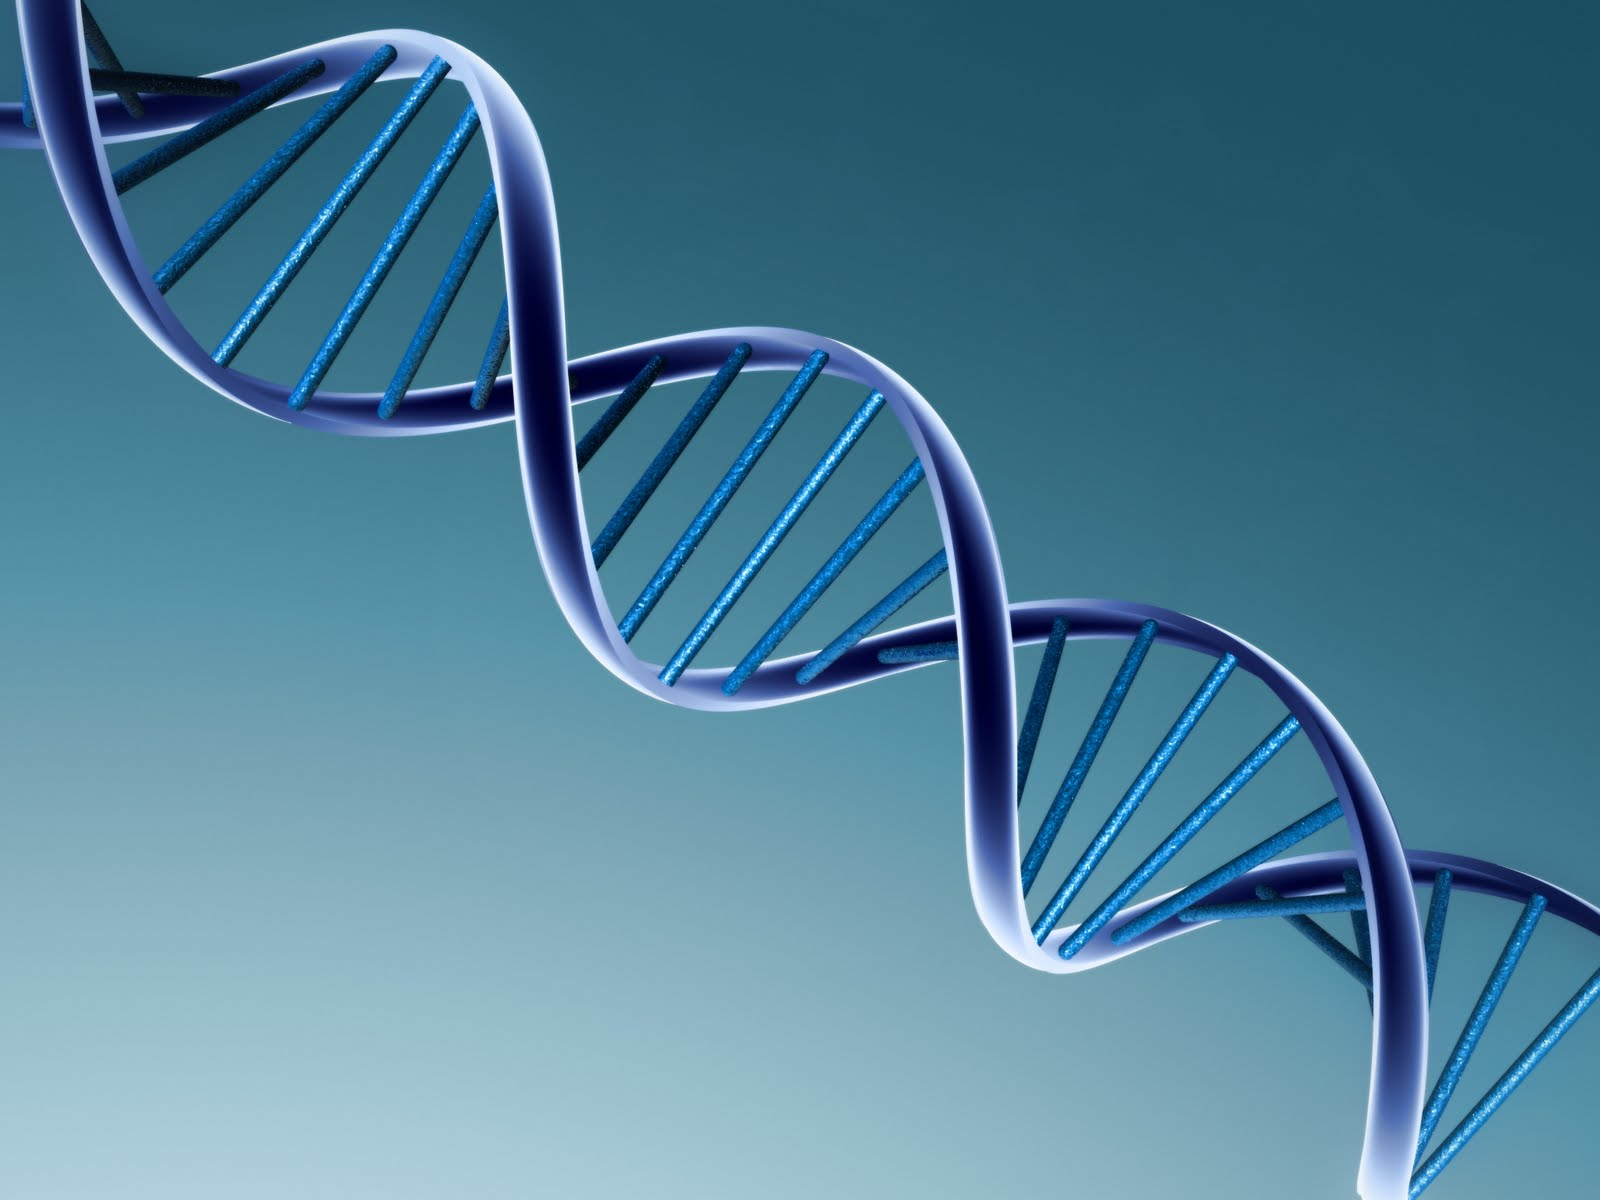 Genetic testing curse or blessing